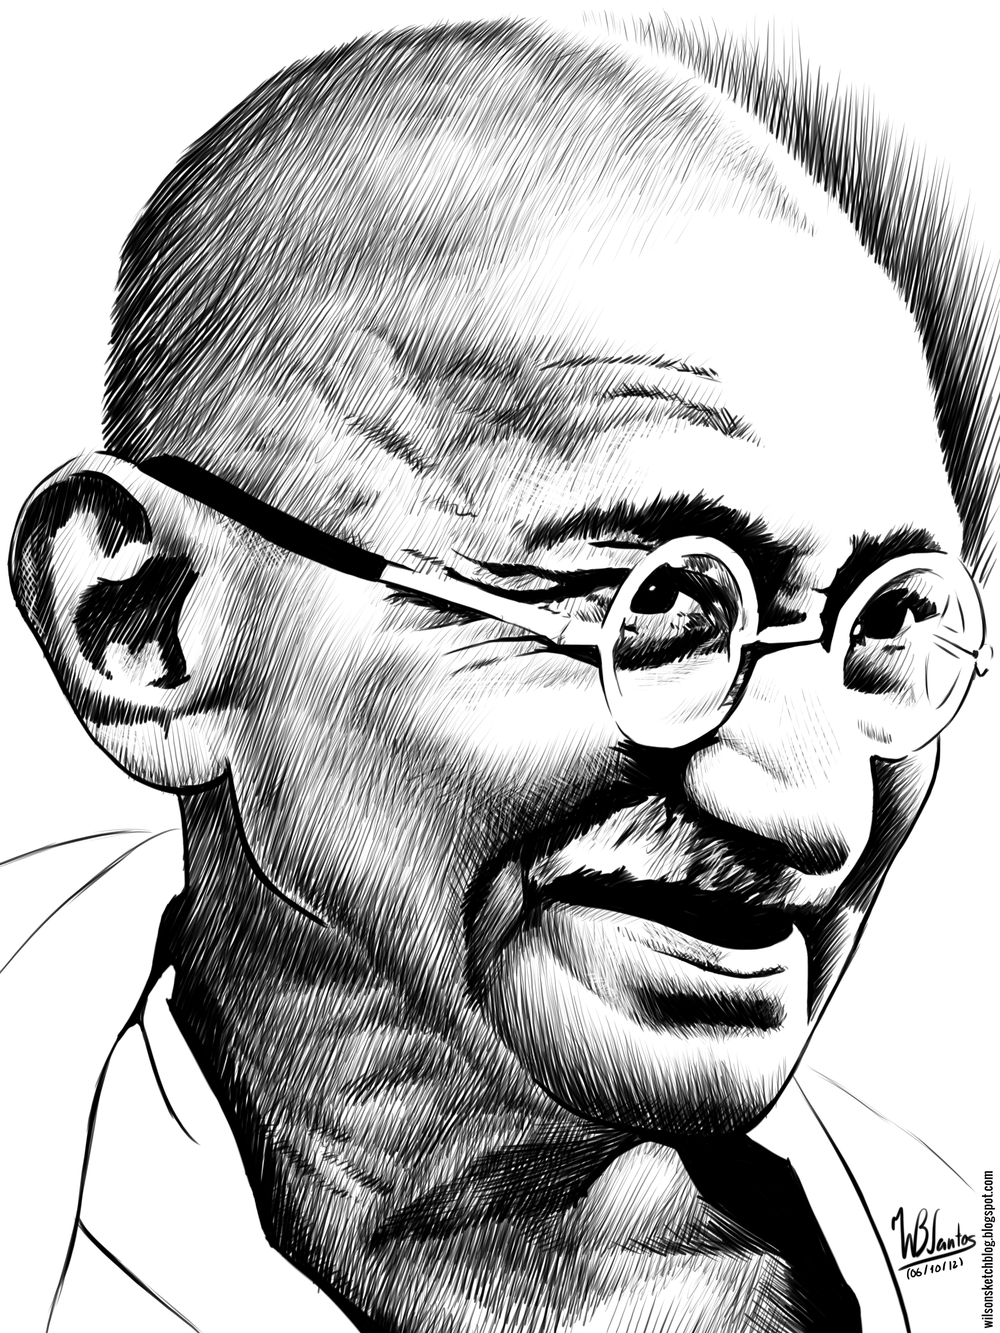 Mahatma Gandhi Pencil Drawing Pics Black And White